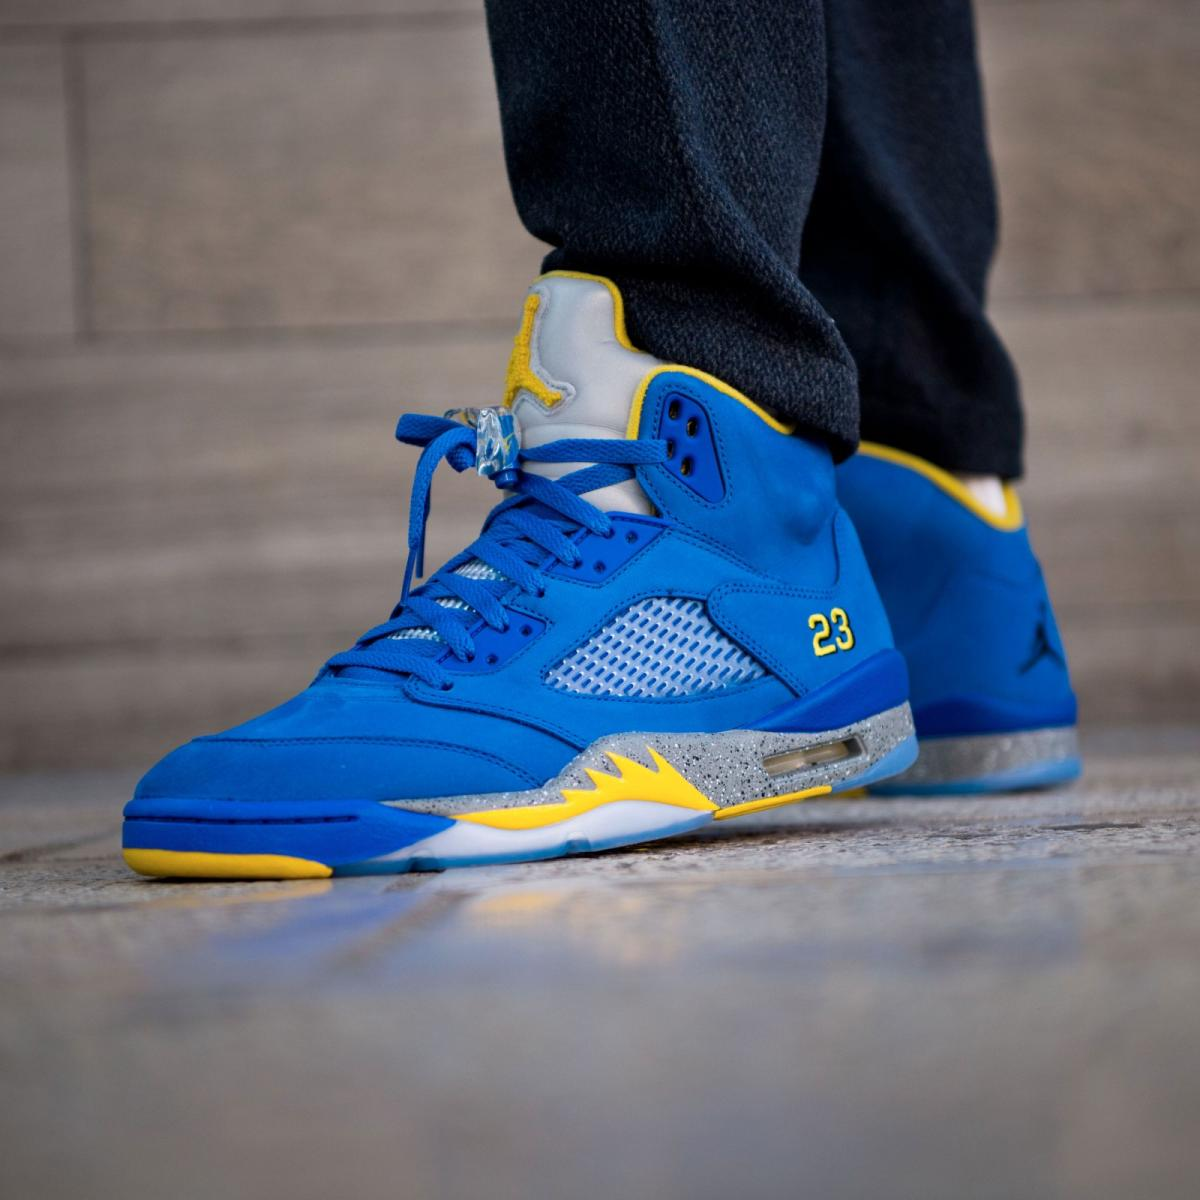 Nike Air Jordan 5 Laney Jsp Cd2720 400